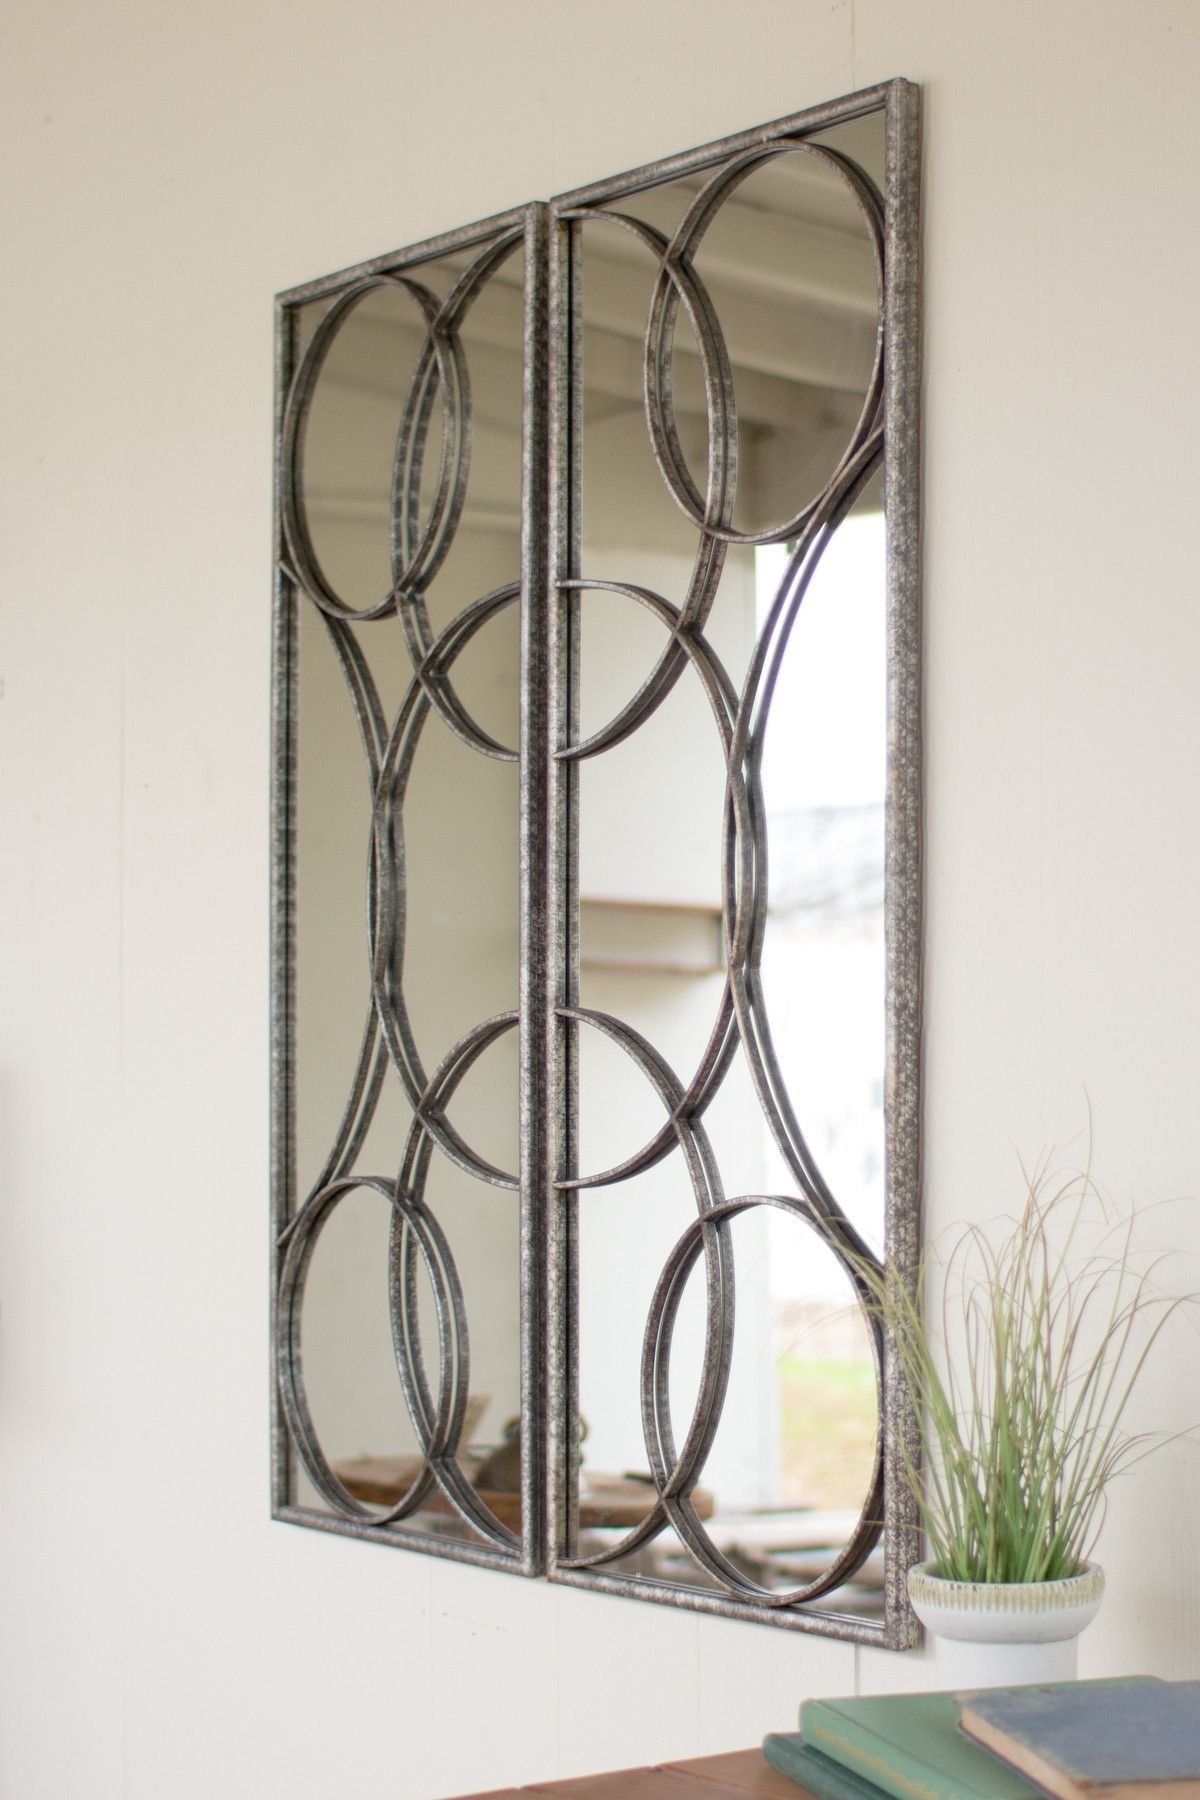 Set of two mirrored wall art pretty things for the house